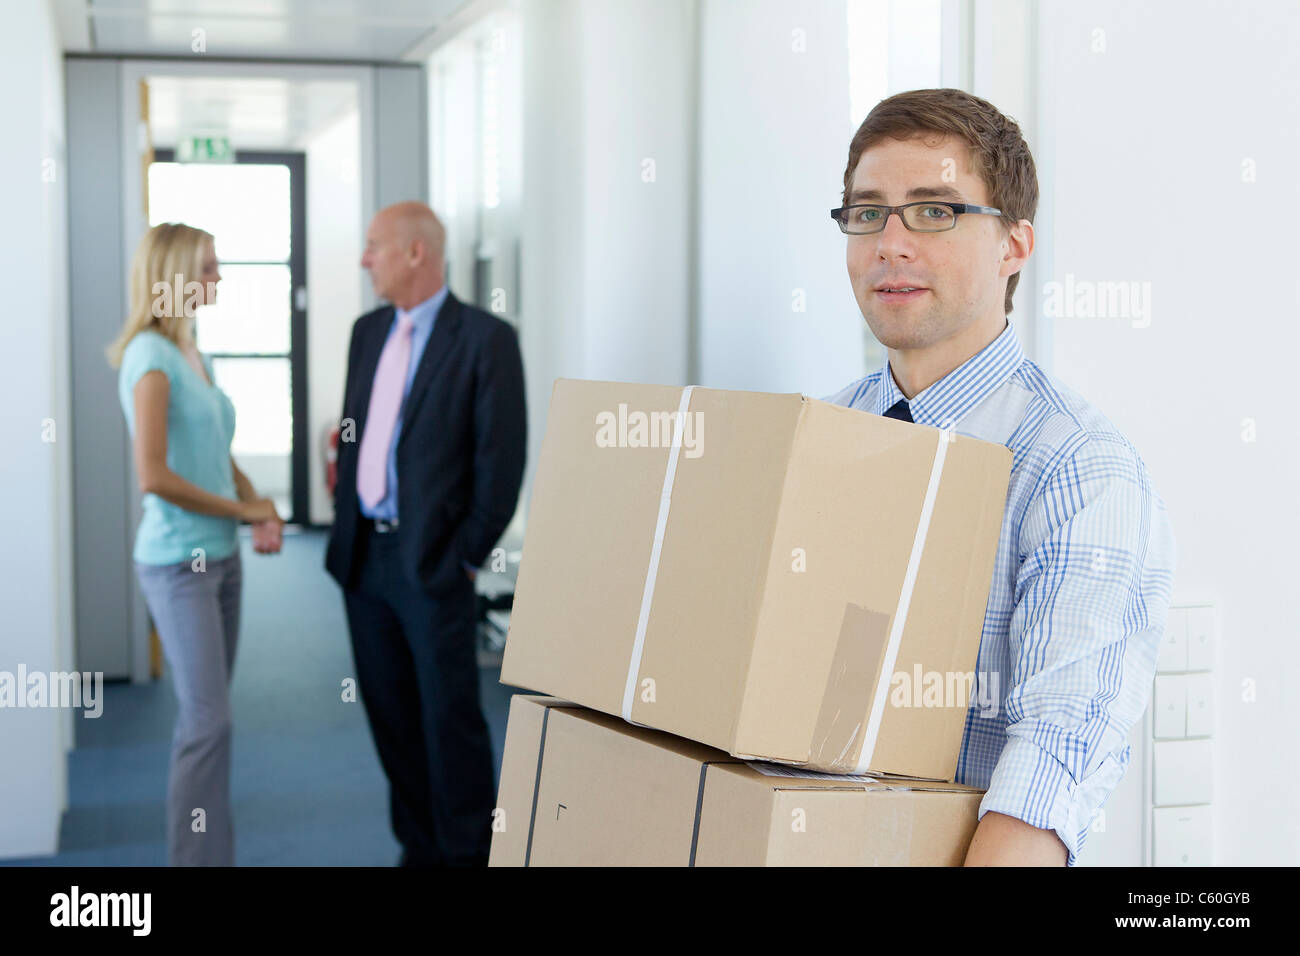 Businessman carrying cardboard boxes - Stock Image